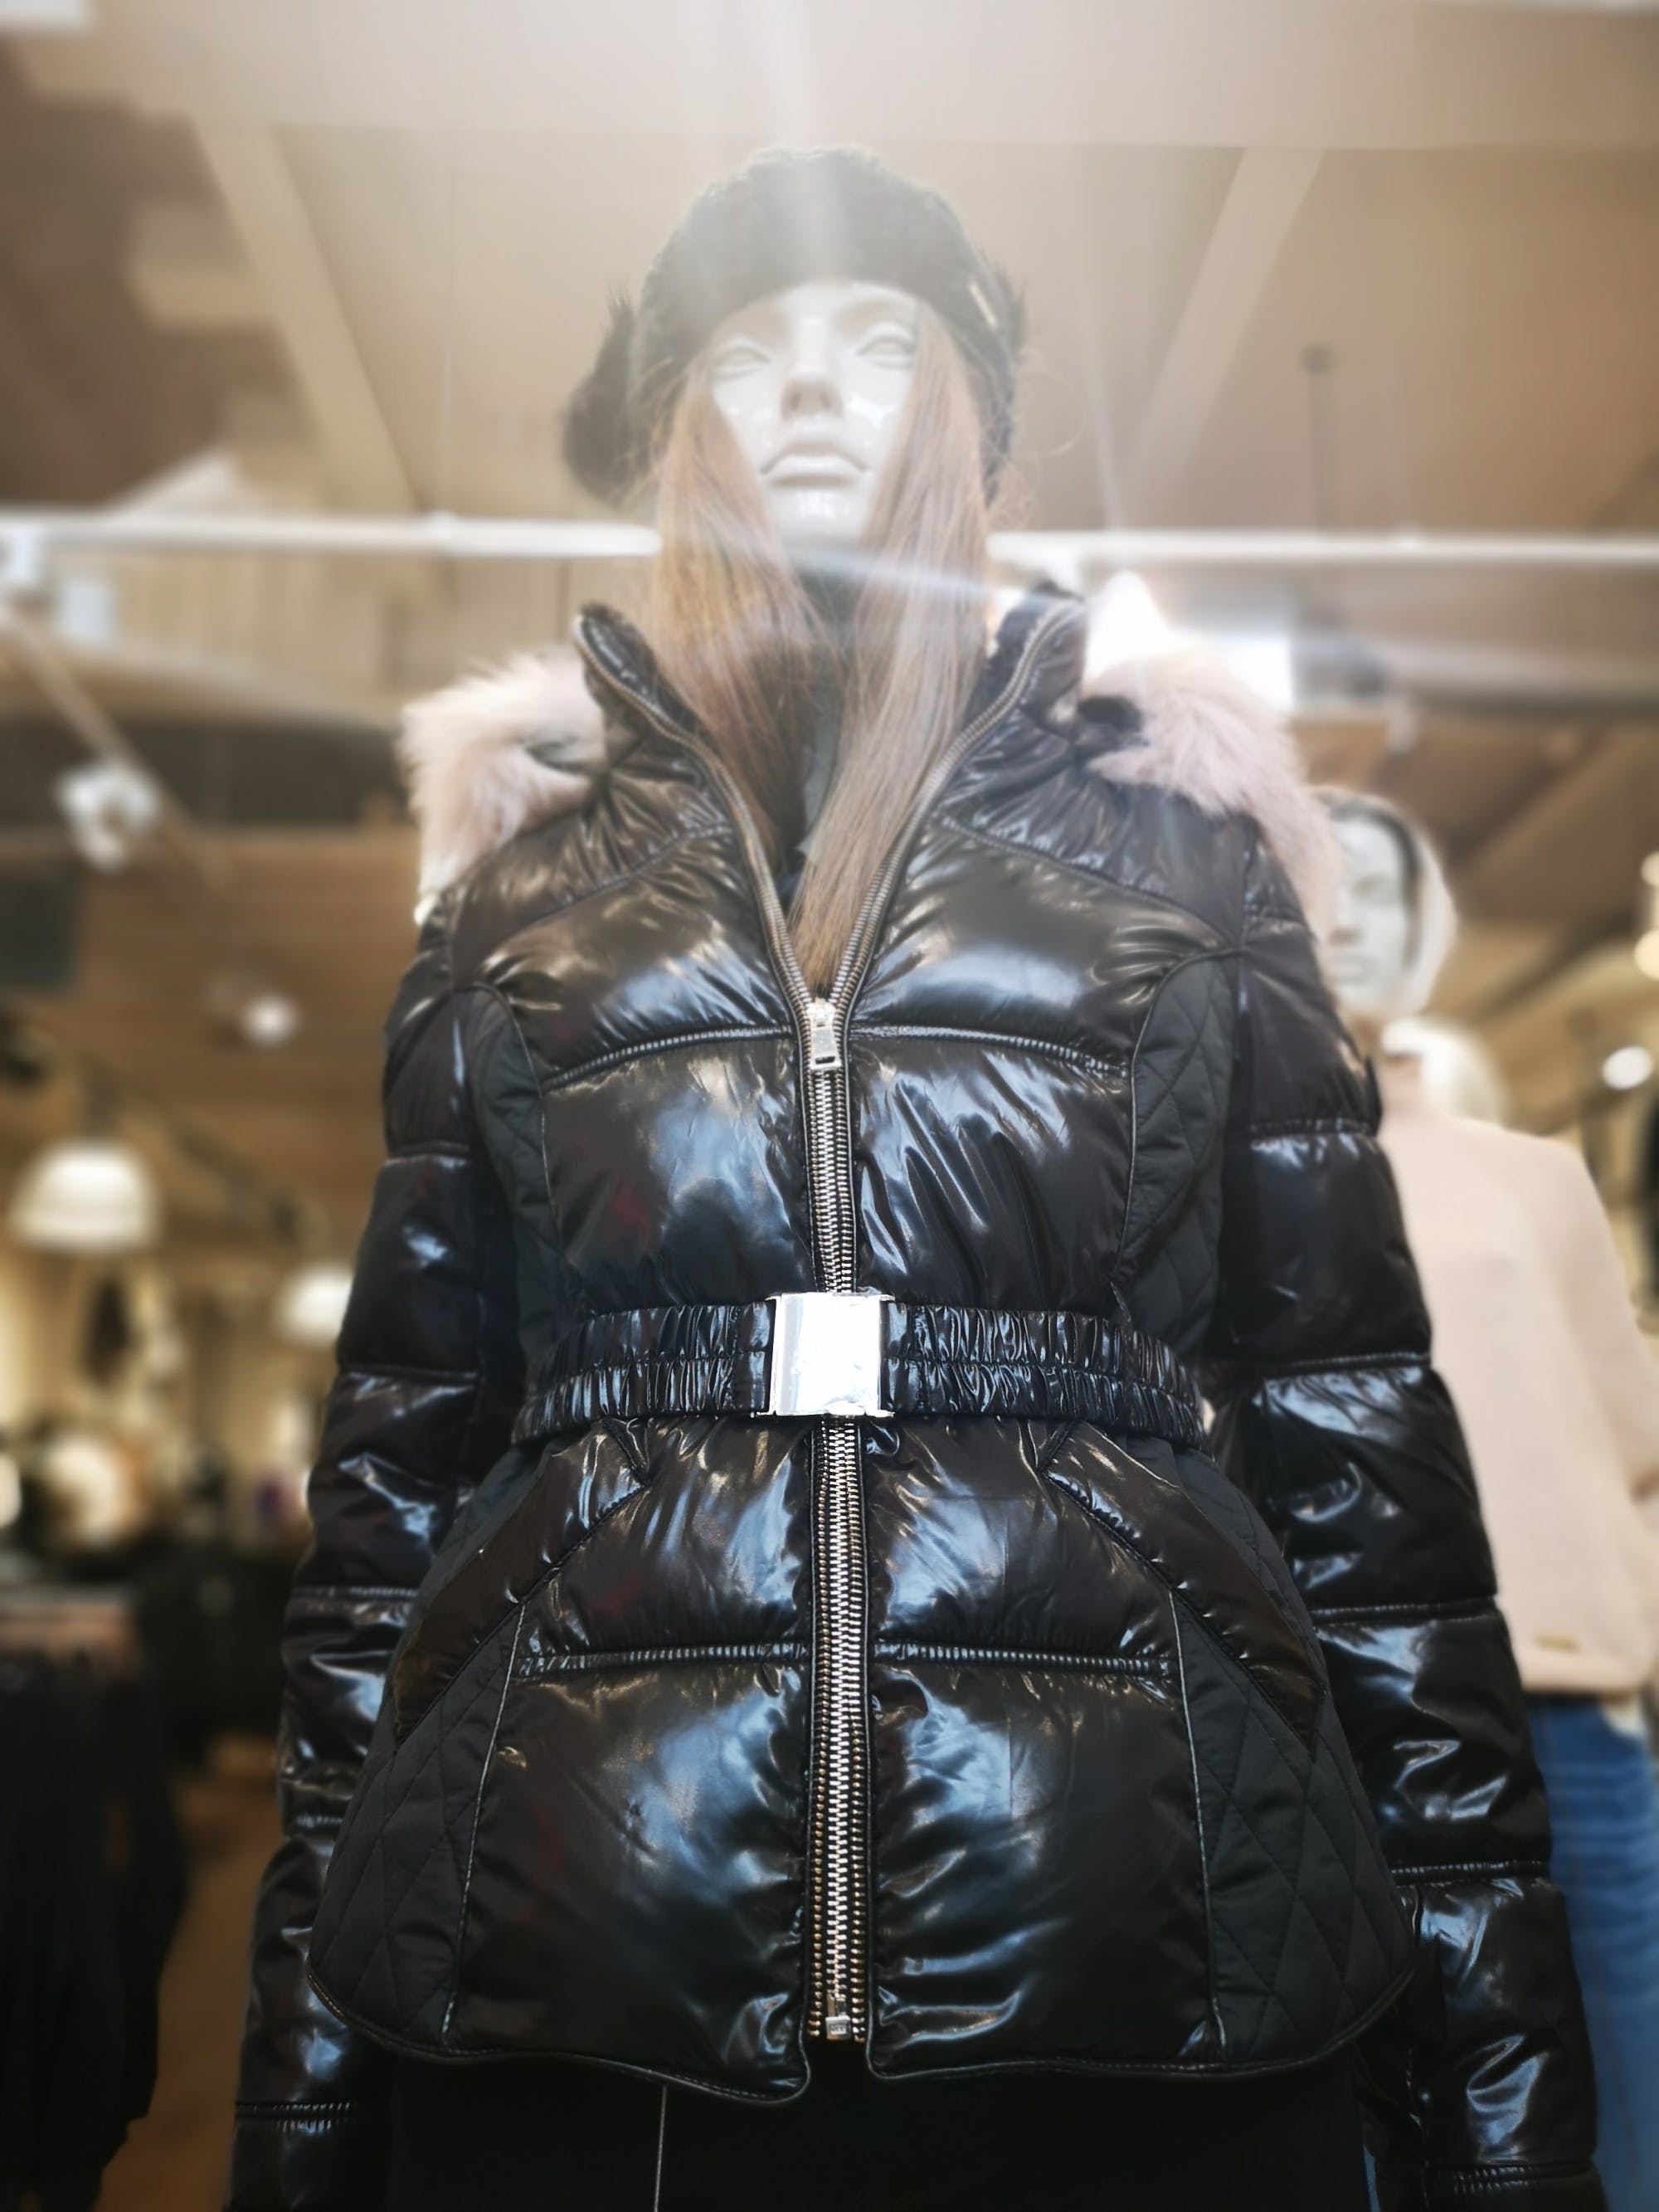 Set sail for River Island and what will be a best selling coat. Padded, warm, shiny, logo belt, fur-lined hood. Your new favourite. £75